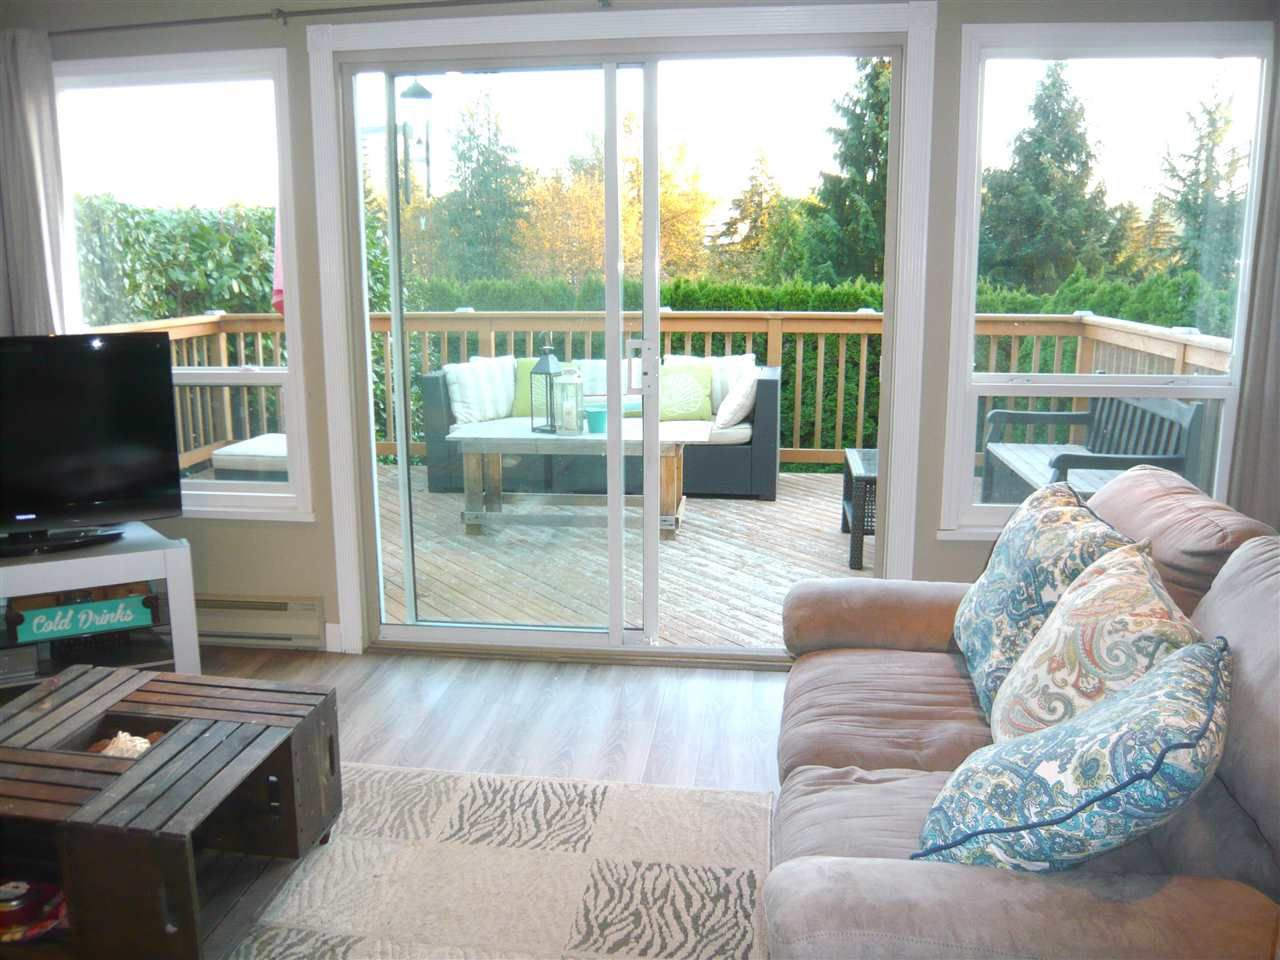 Main Photo: 727 APPLEYARD COURT in Port Moody: North Shore Pt Moody House for sale : MLS®# R2116567